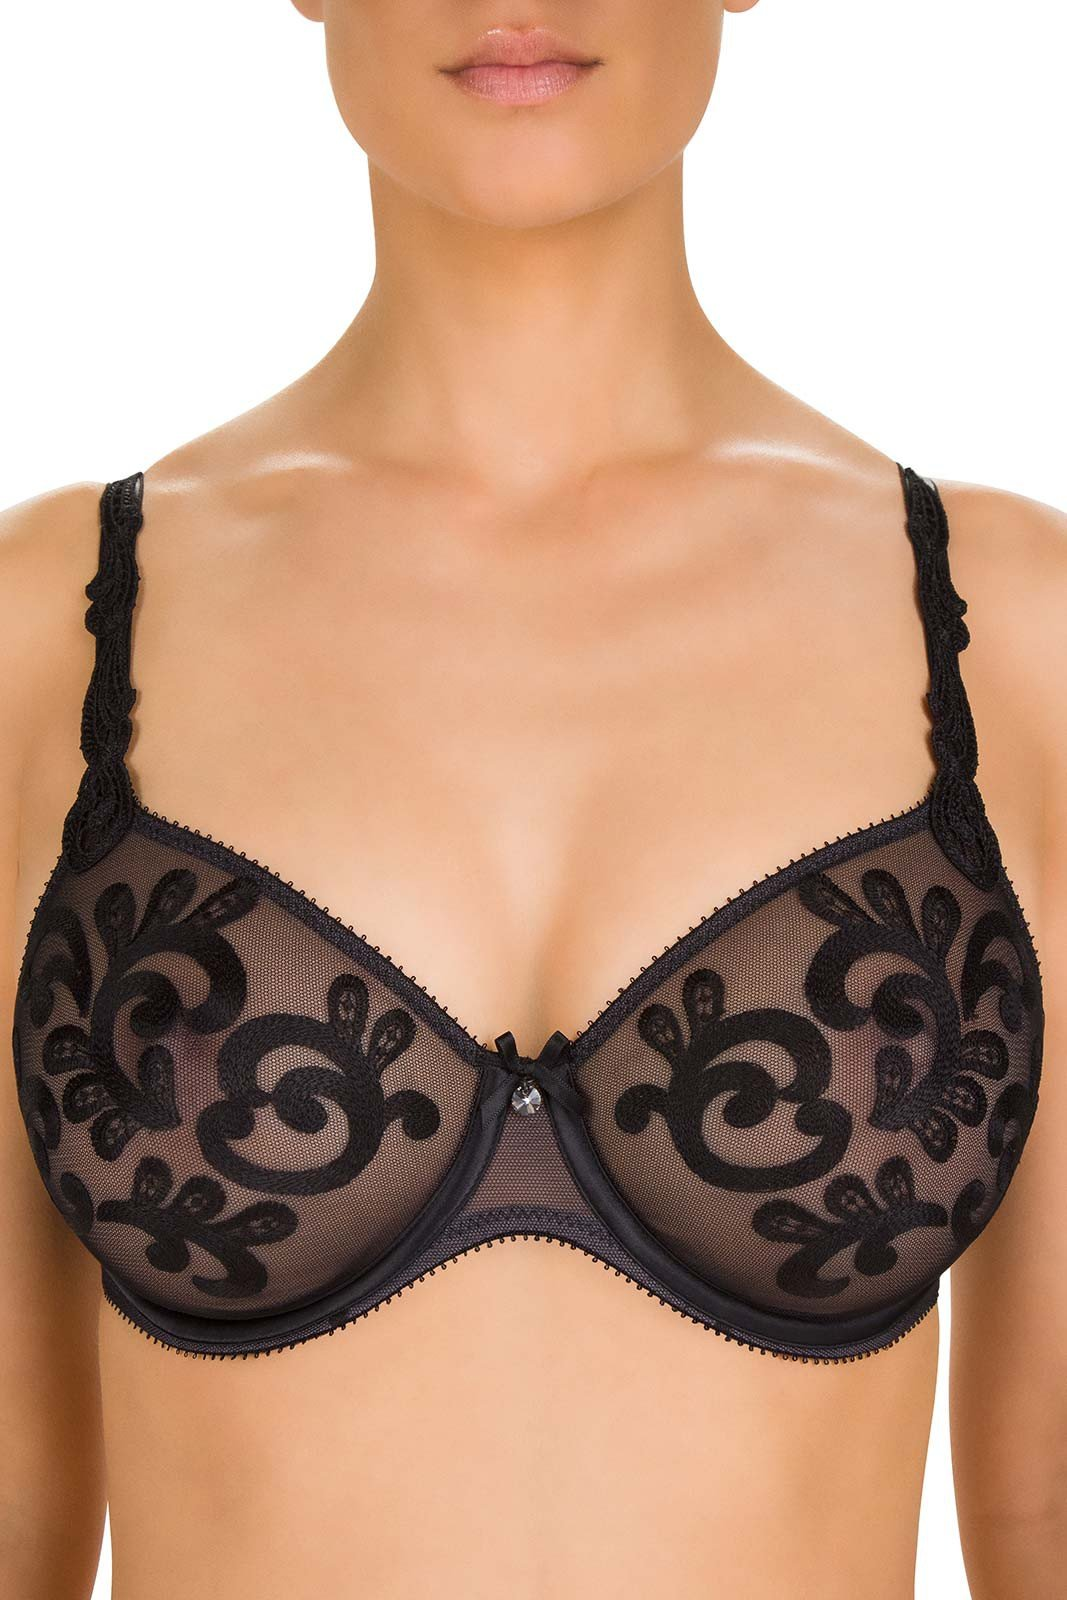 Sparkle Molded Smooth Bra